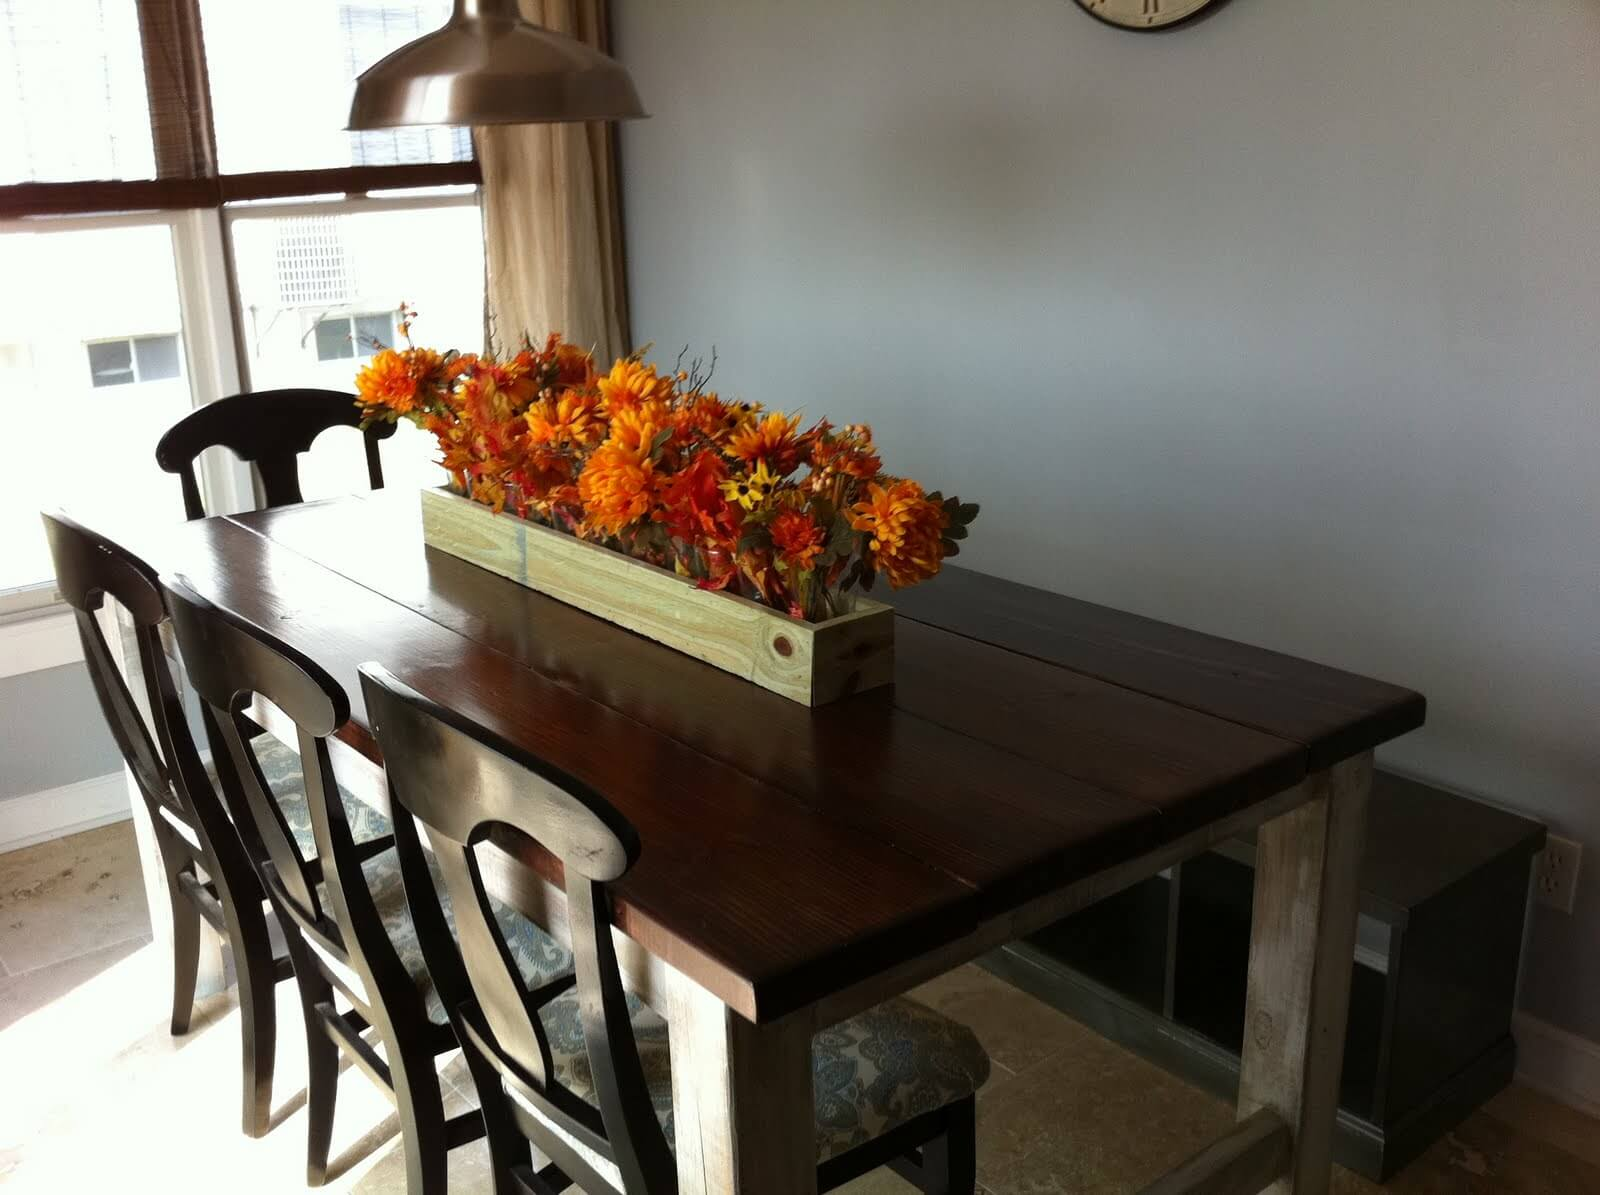 The farmhouse table is an amazing addition